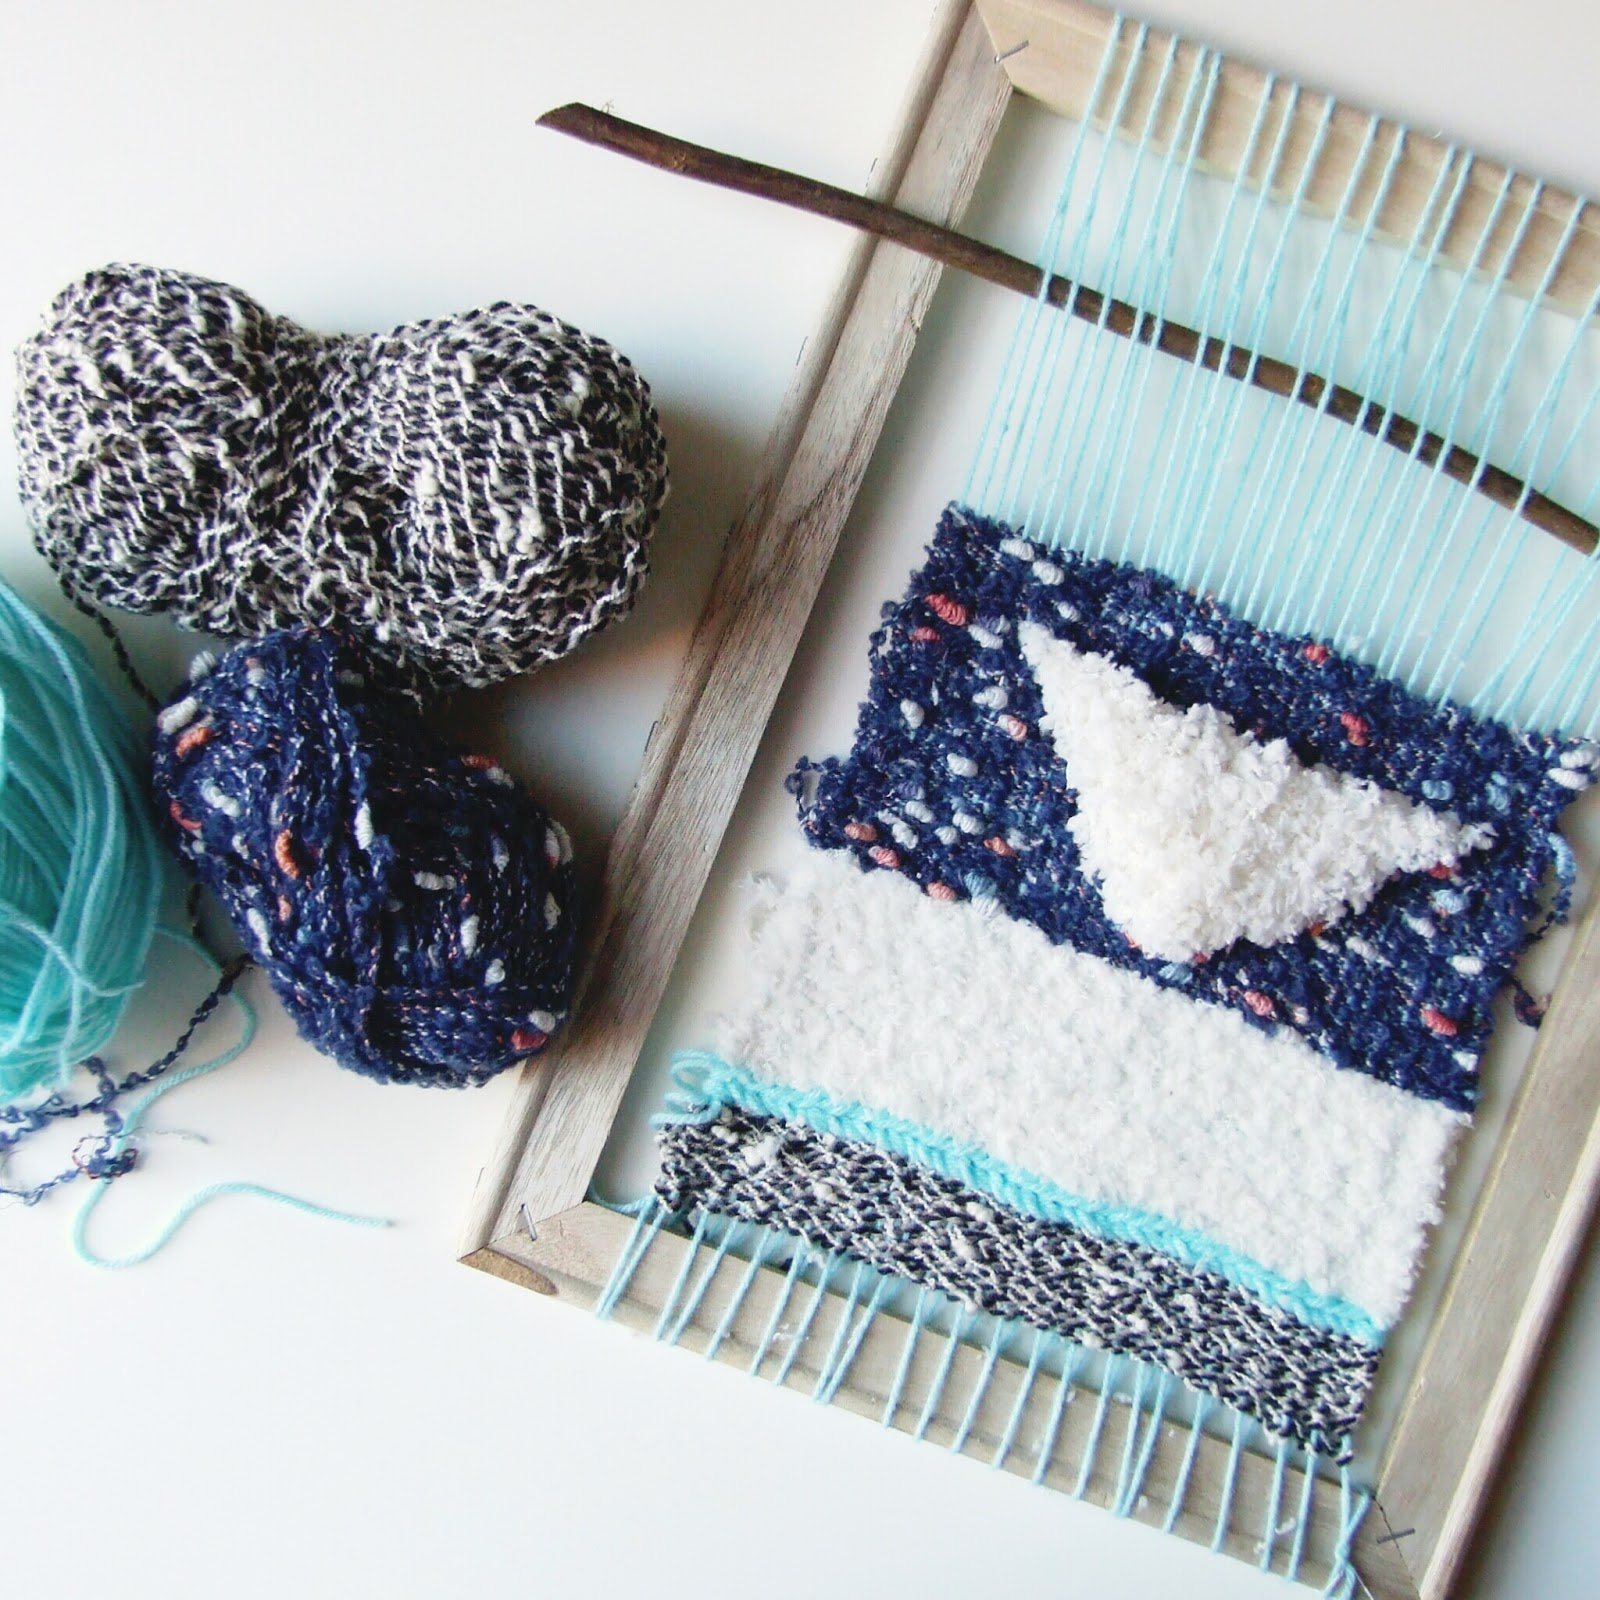 Around Here - A first attempt at weaving.